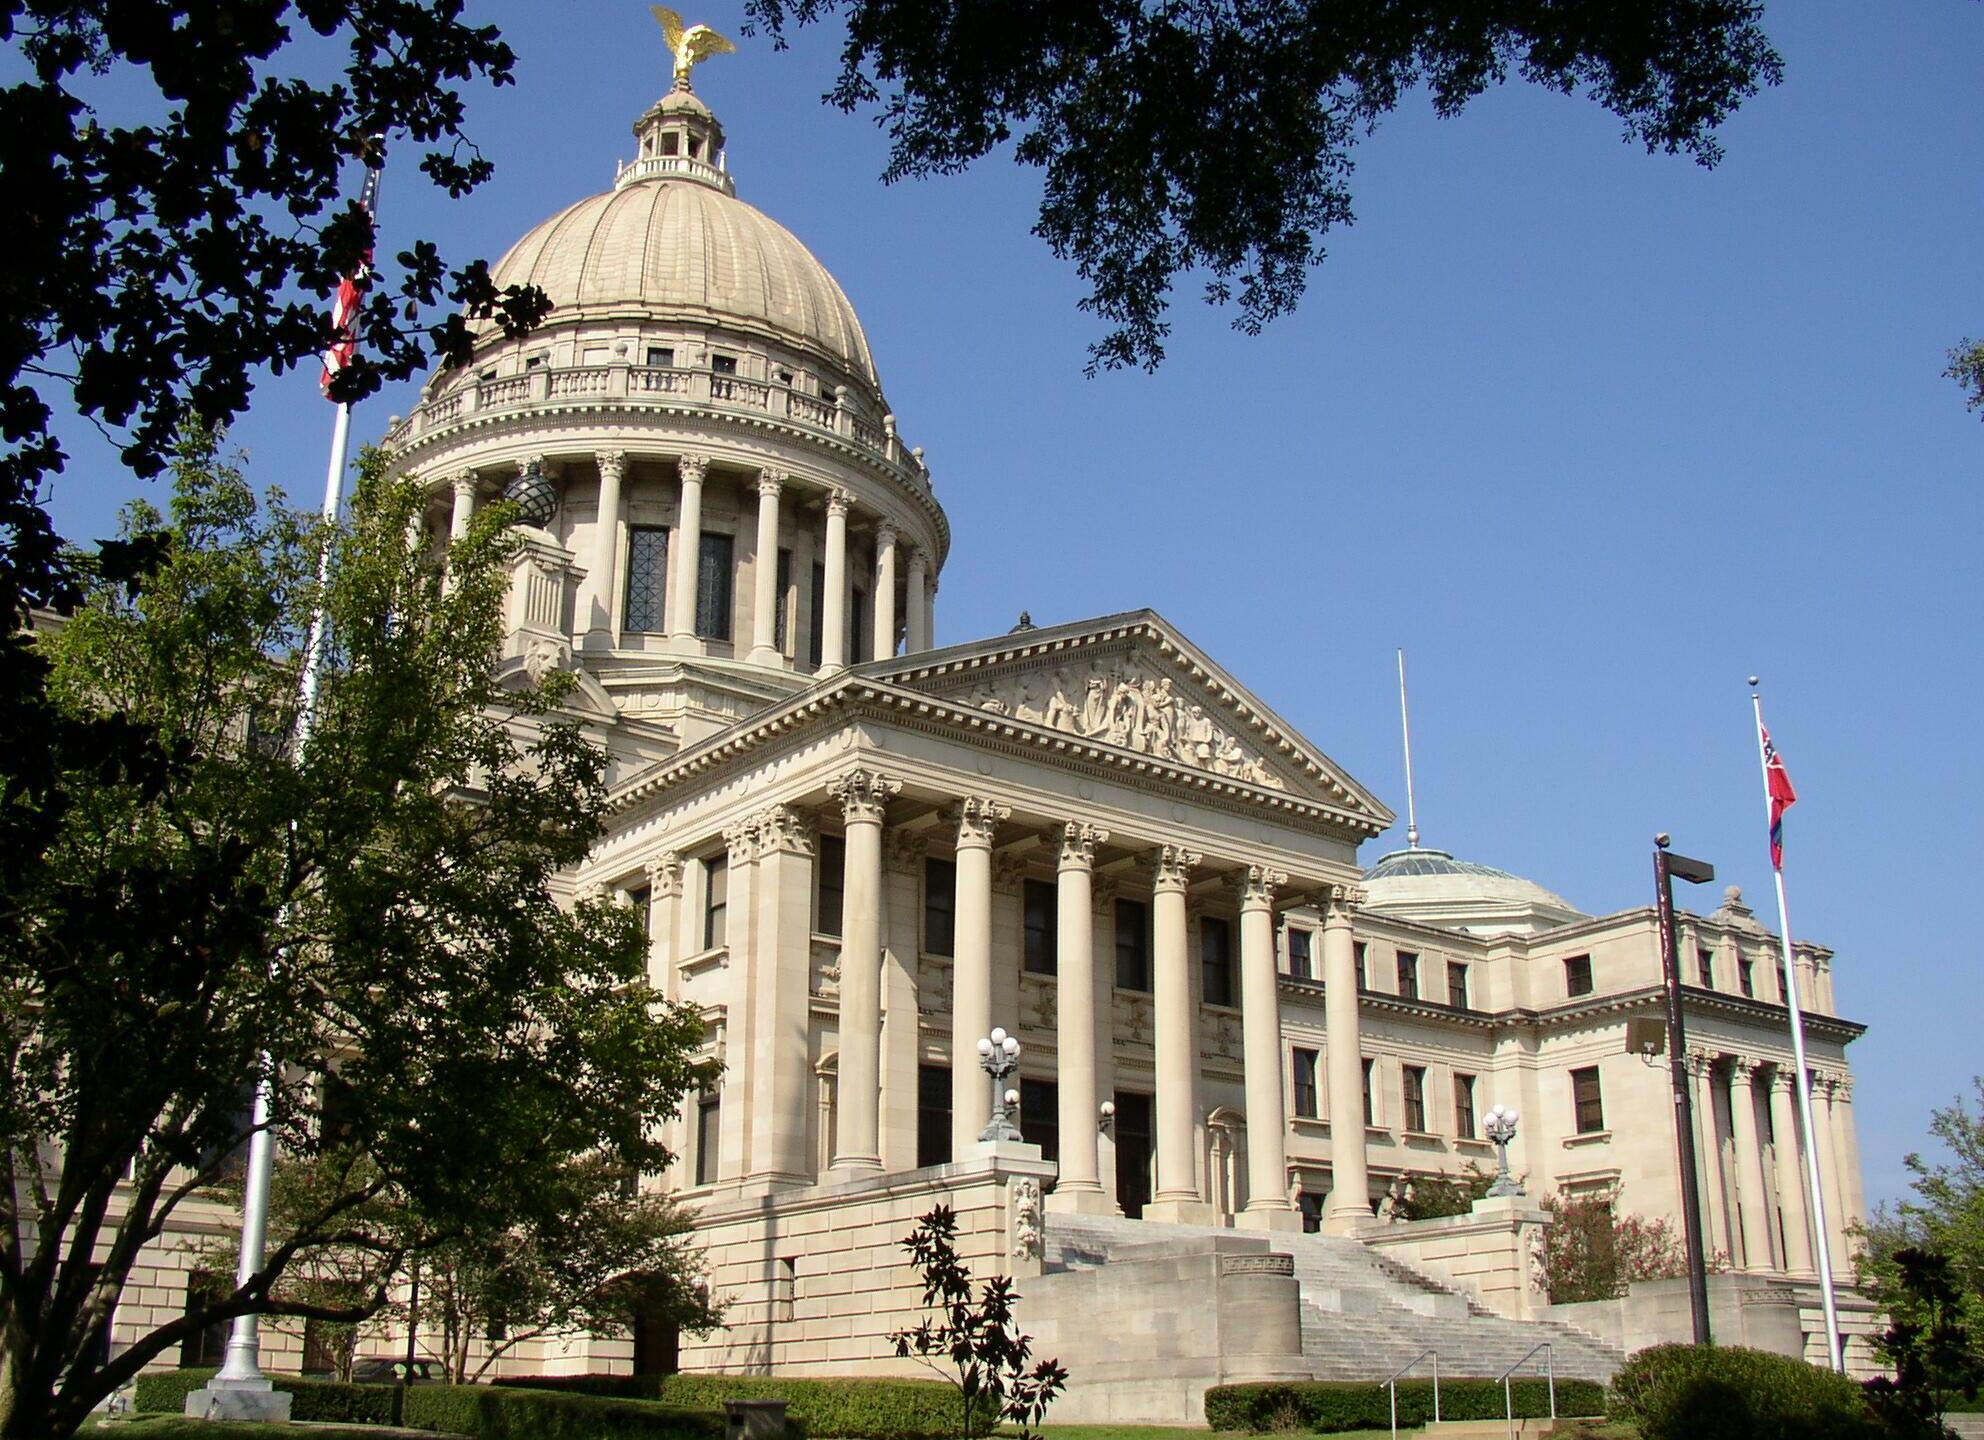 Mississippi_New_State_Capitol_Building_in_Jackson_402991